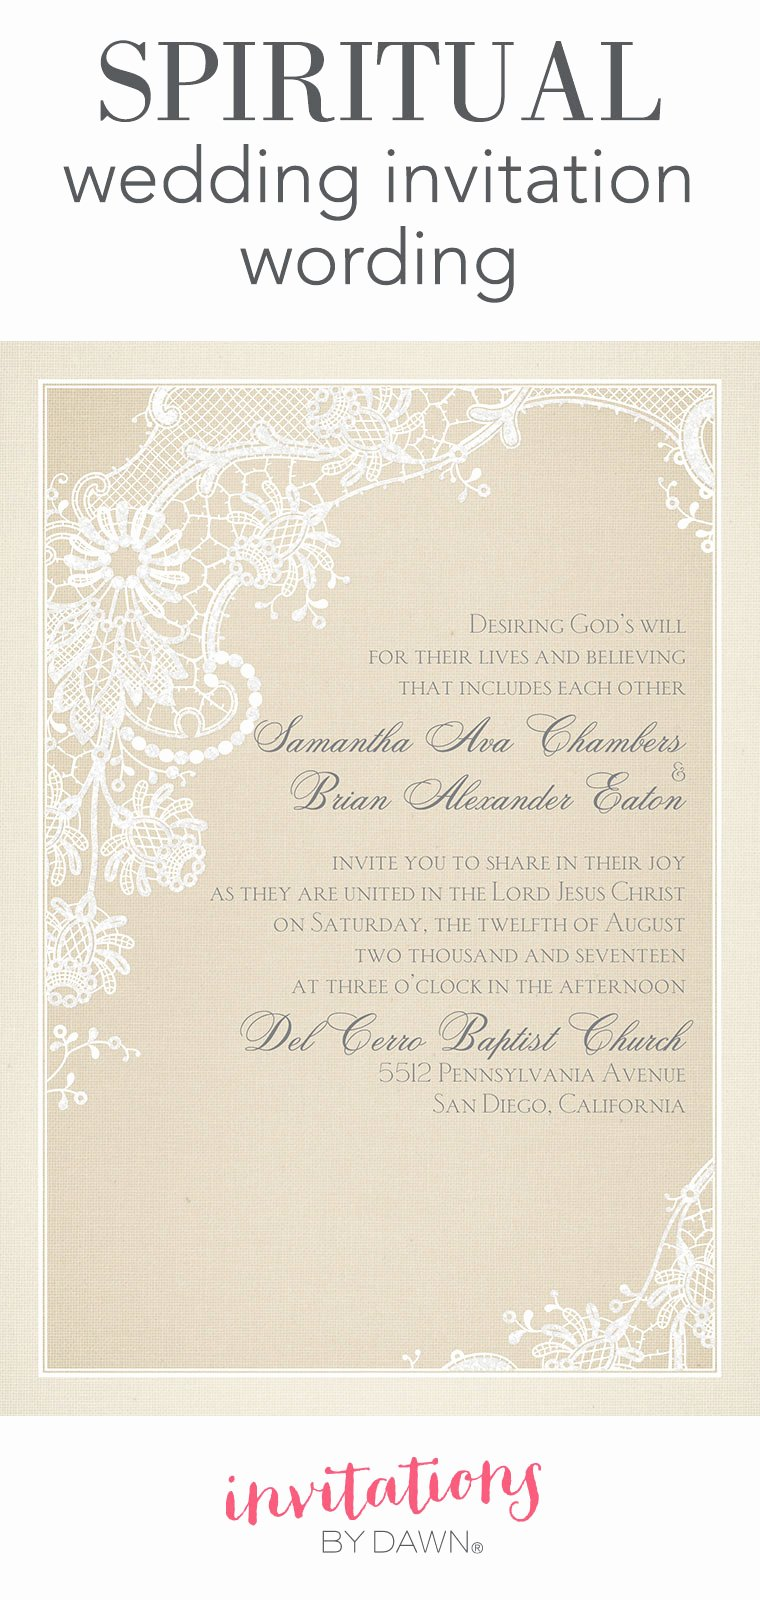 Wedding Invitation Wording Template Inspirational Spiritual Wedding Invitation Wording